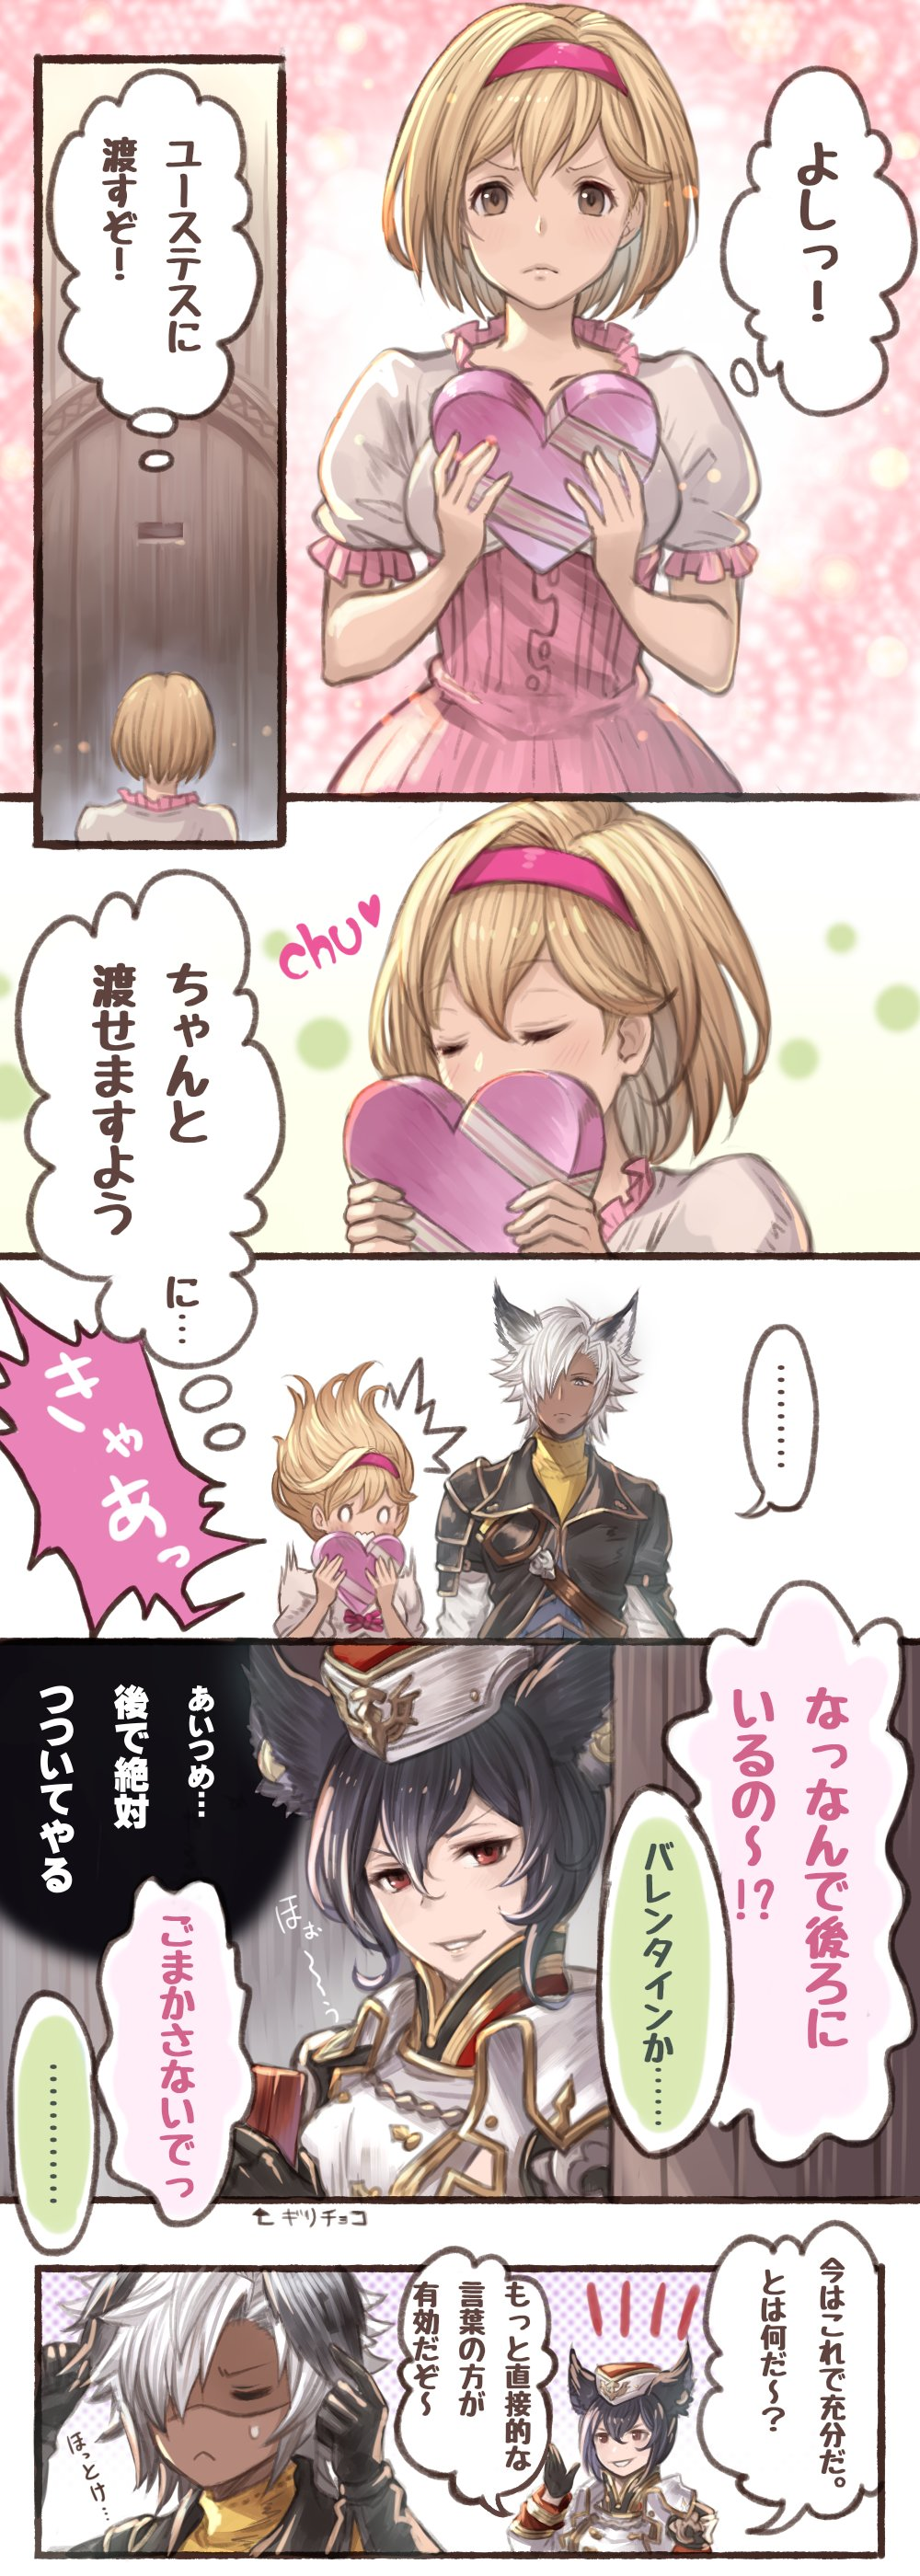 1boy 2girls absurdres animal_ears black_hair blonde_hair blush brown_eyes comic dark_skin djeeta_(granblue_fantasy) door dress erune eustace-flamek eustace_(granblue_fantasy) granblue_fantasy hairband hat heart-shaped_box highres ilsa jacket multiple_girls pink_dress short_hair smile smug surprised tagme text translation_request valentine white_hair